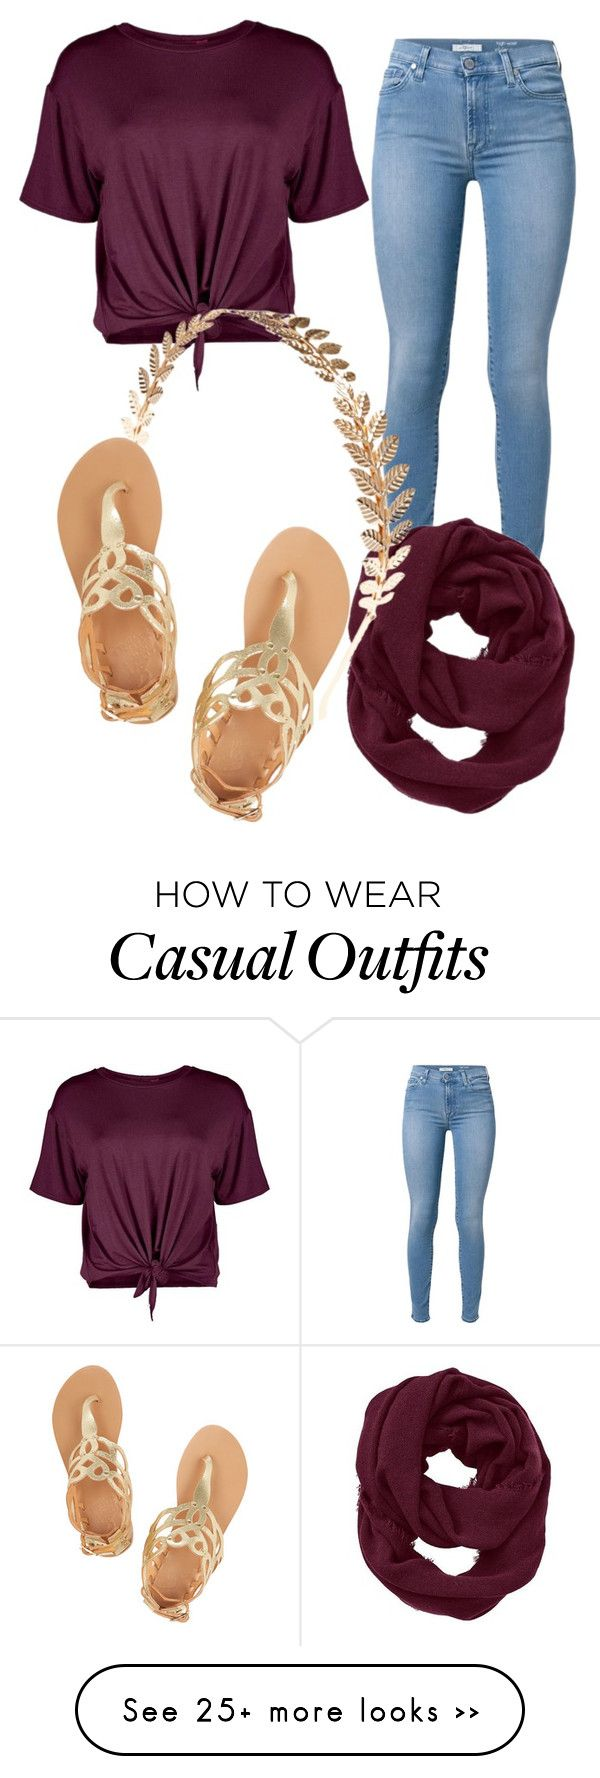 """Casual Day"" by xoxoluve on Polyvore featuring 7 For All Mankind, Boohoo, Athleta, Wet Seal and Ancient Greek Sandals"